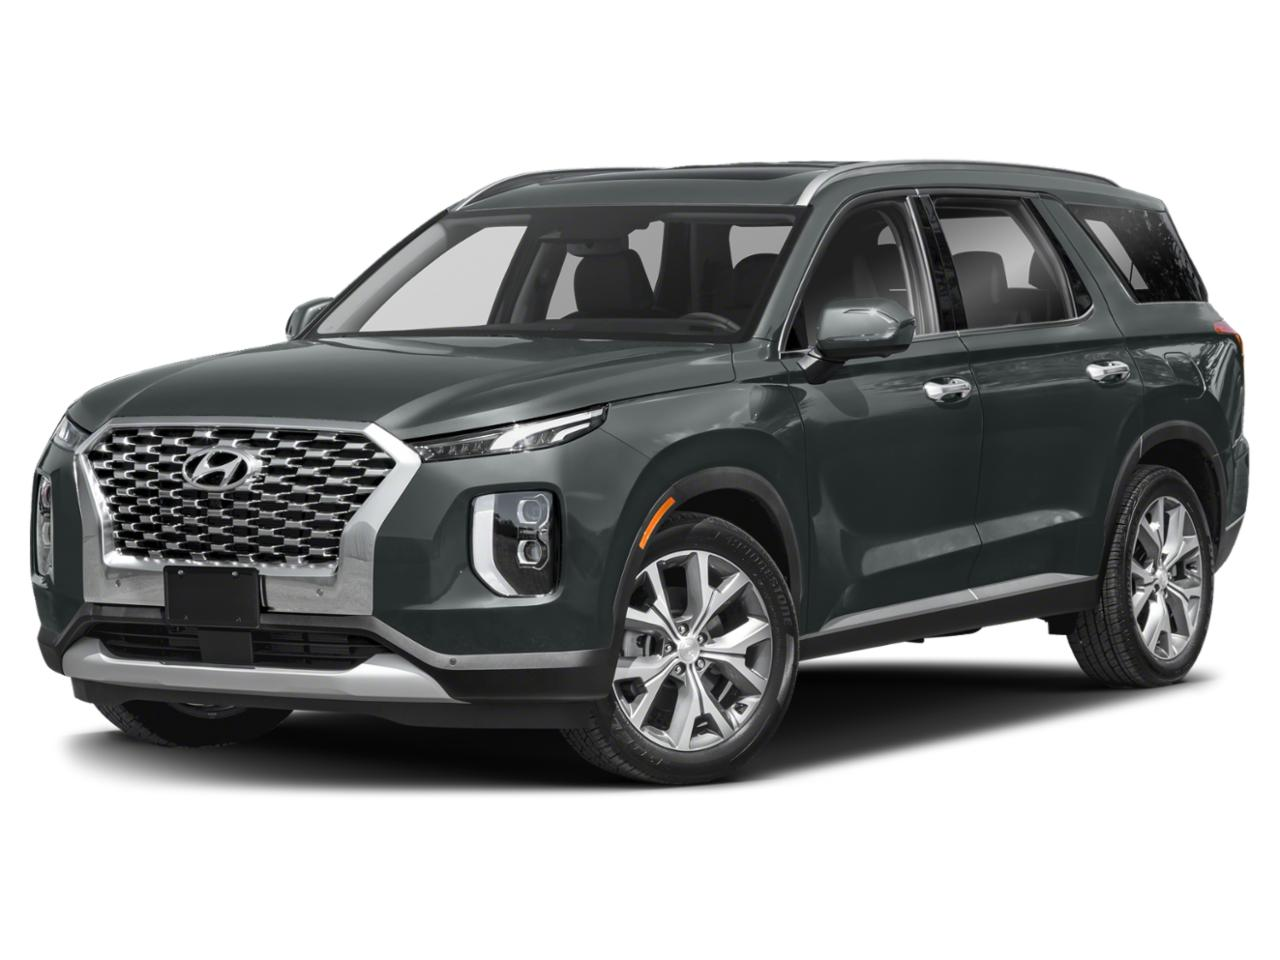 2020 Hyundai Palisade Vehicle Photo in Merrillville, IN 46410